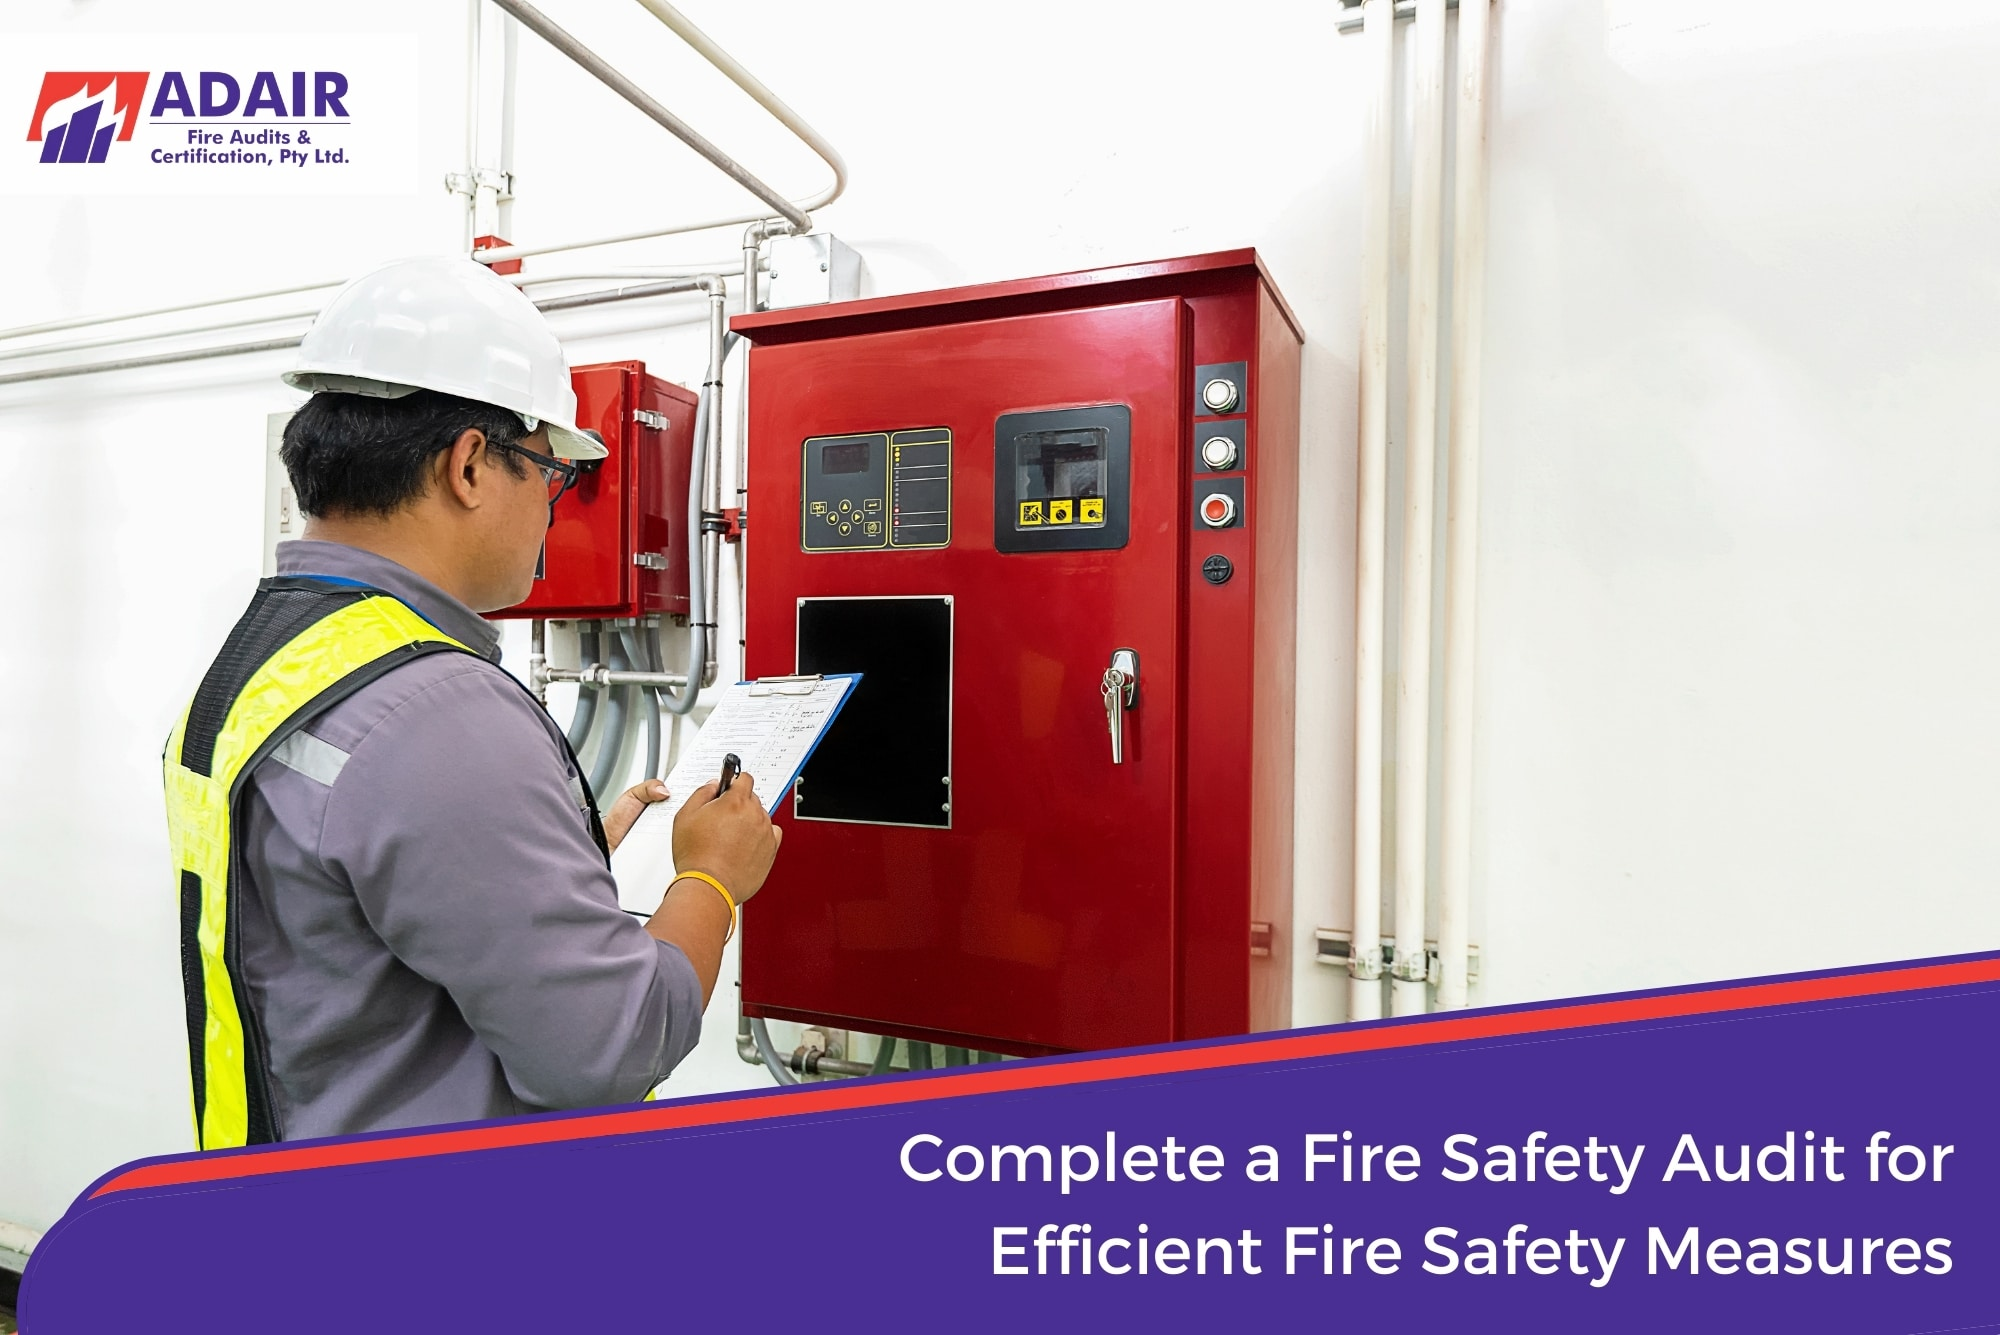 Complete a Fire Safety Audit for Efficient Fire Safety Measures